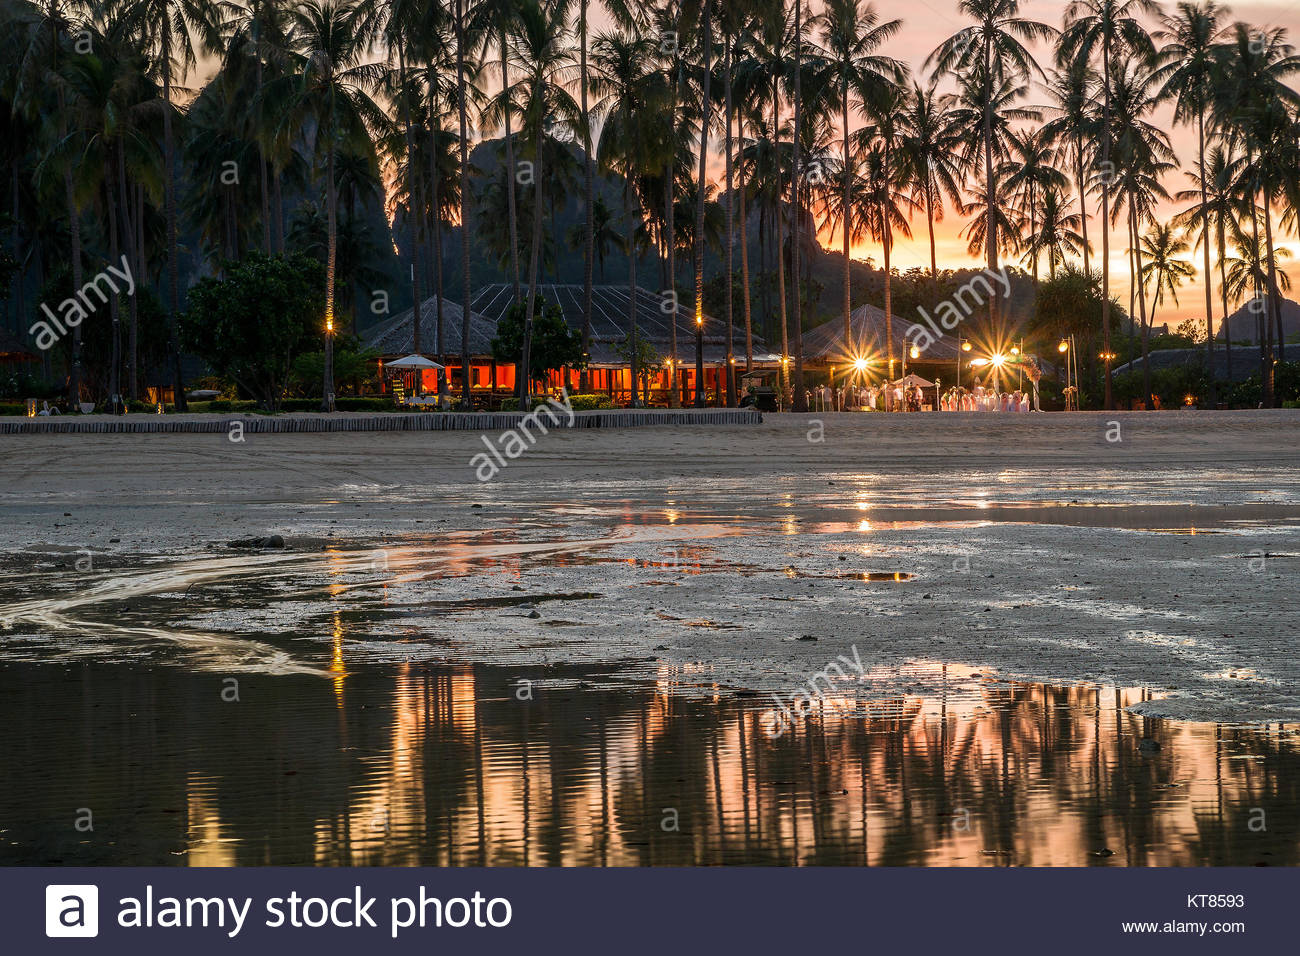 Loh Bagao Bay (Pee Pee Island Village) at low tide after sunset - Koh Phi Phi - Thailand Stock Photo